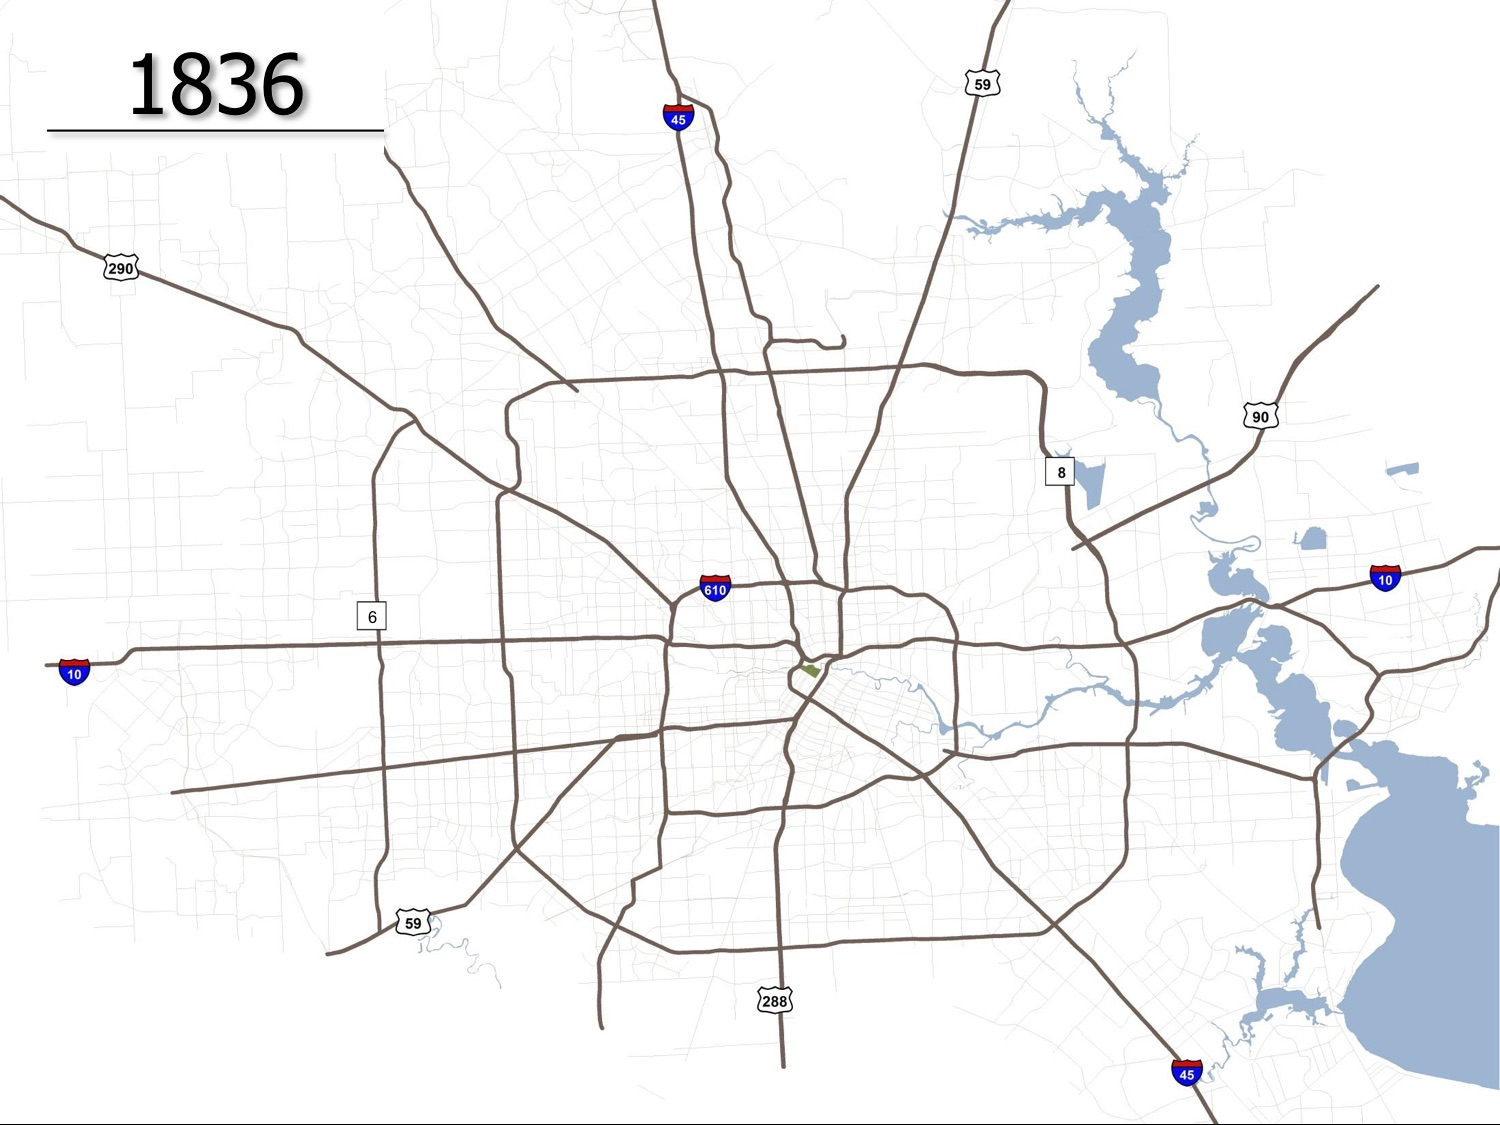 Maps show how Houston has grown since 1836